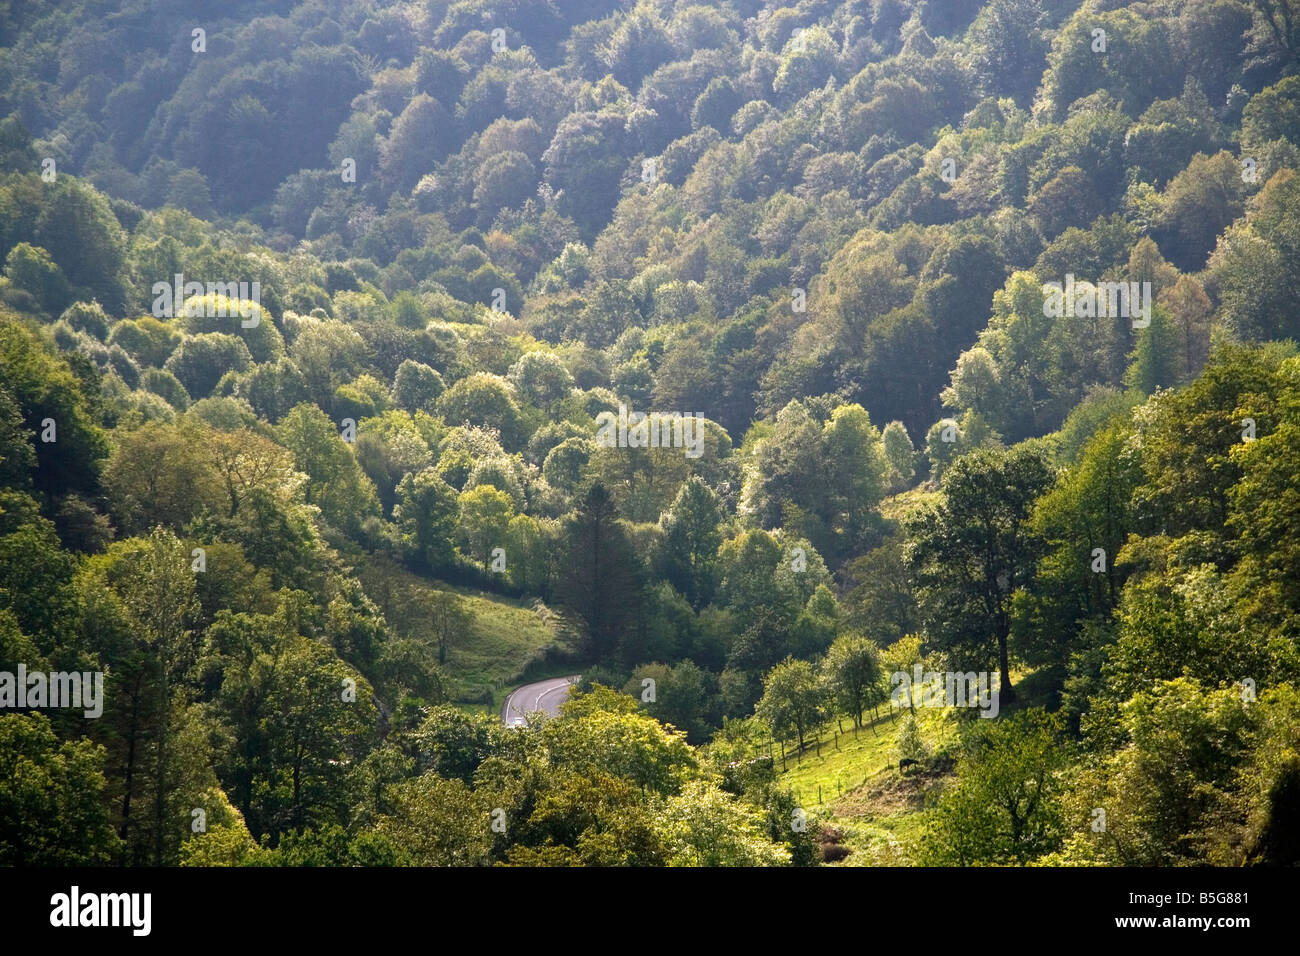 Forested Picos de Europa mountains at Covadonga Asturias northwestern Spain - Stock Image